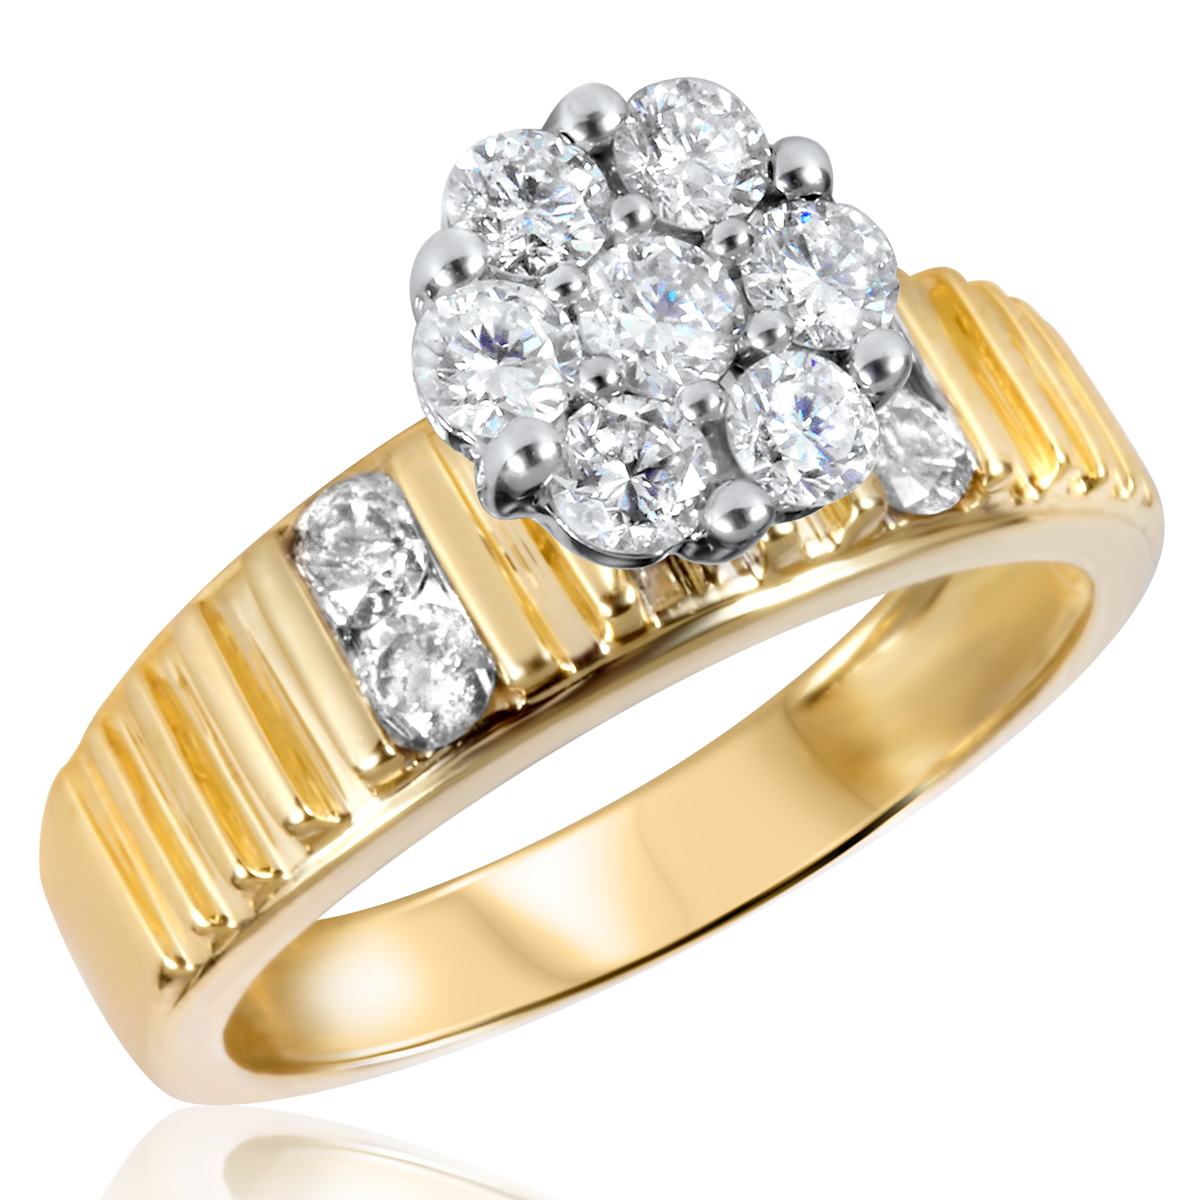 7/8 CT. T.W. Diamond Ladies Engagement Ring 14K Yellow Gold- Size 8